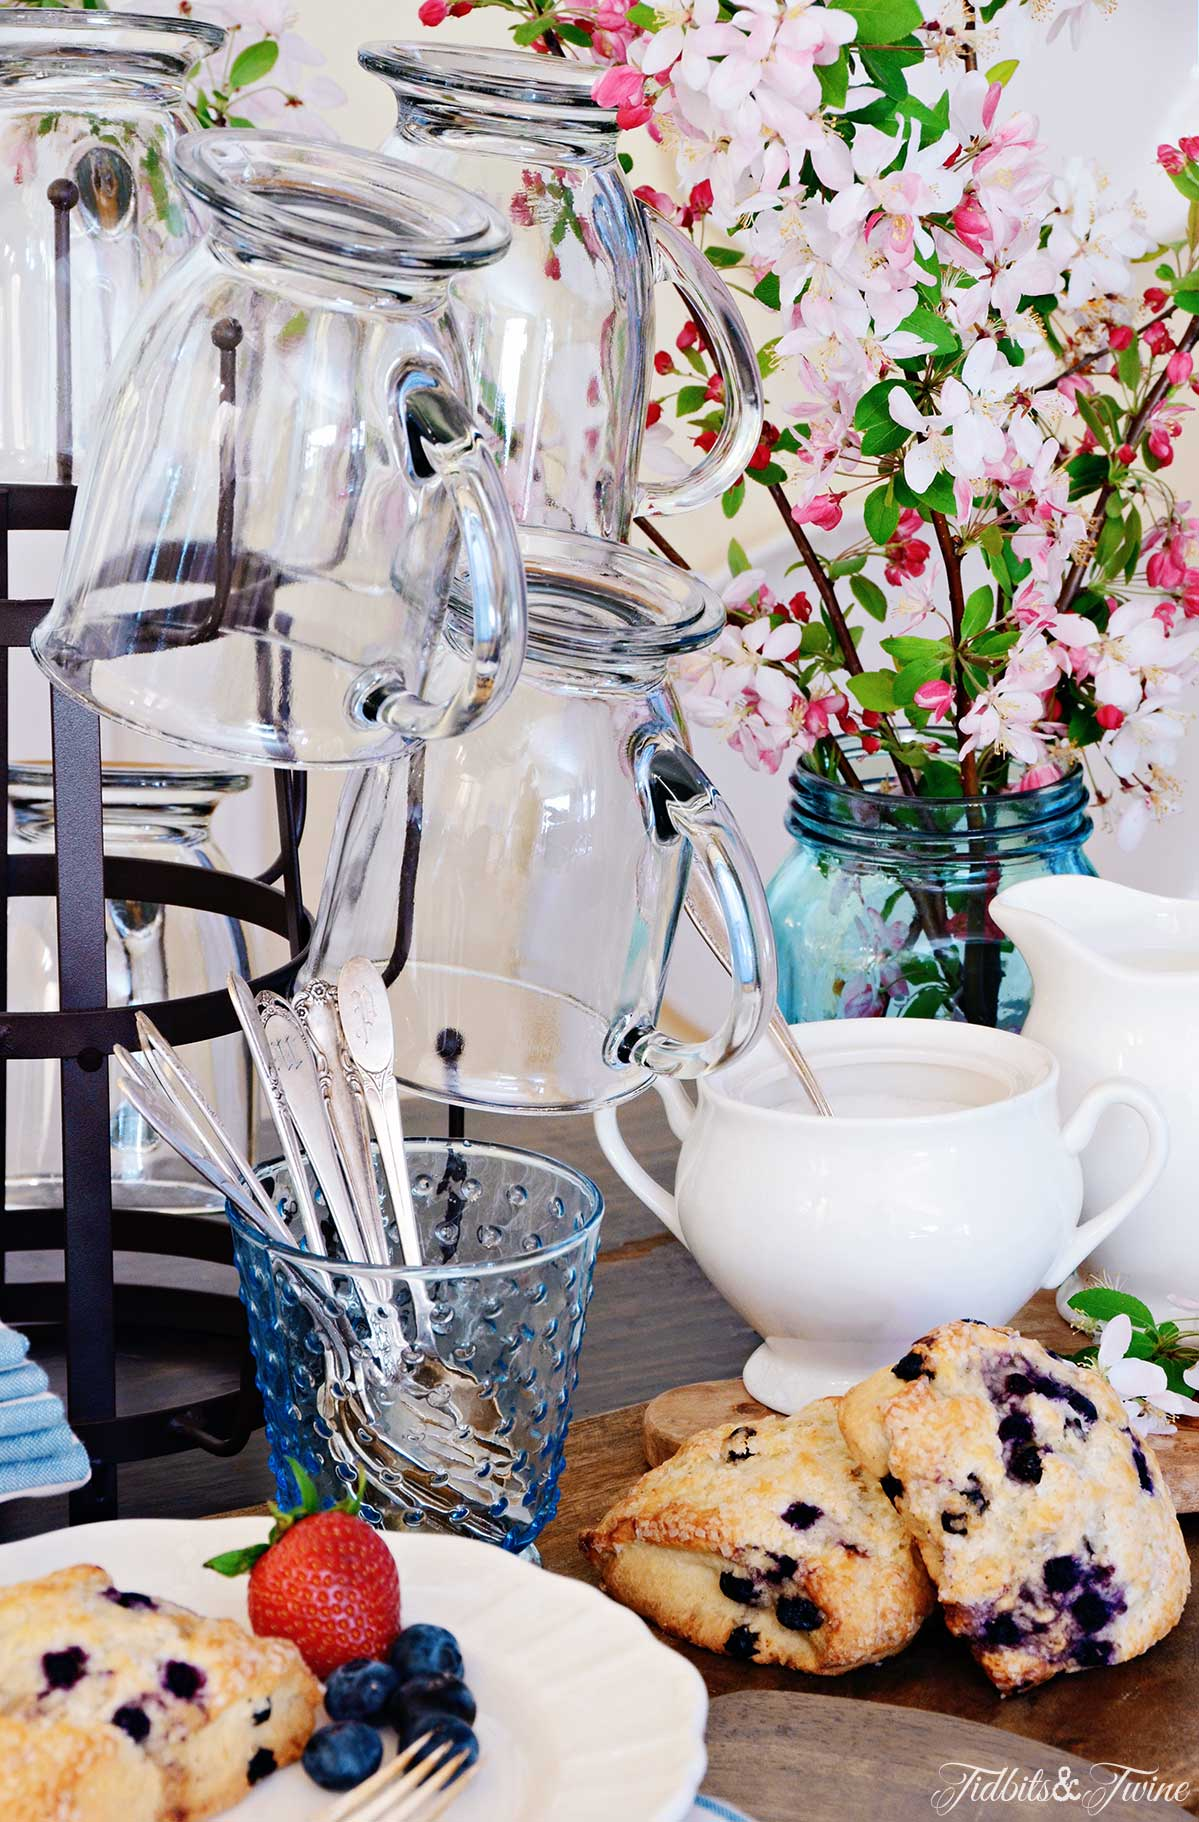 Closeup of bottle drying rack holding clear coffee mugs next to vase of cherry blossoms and plate of scones